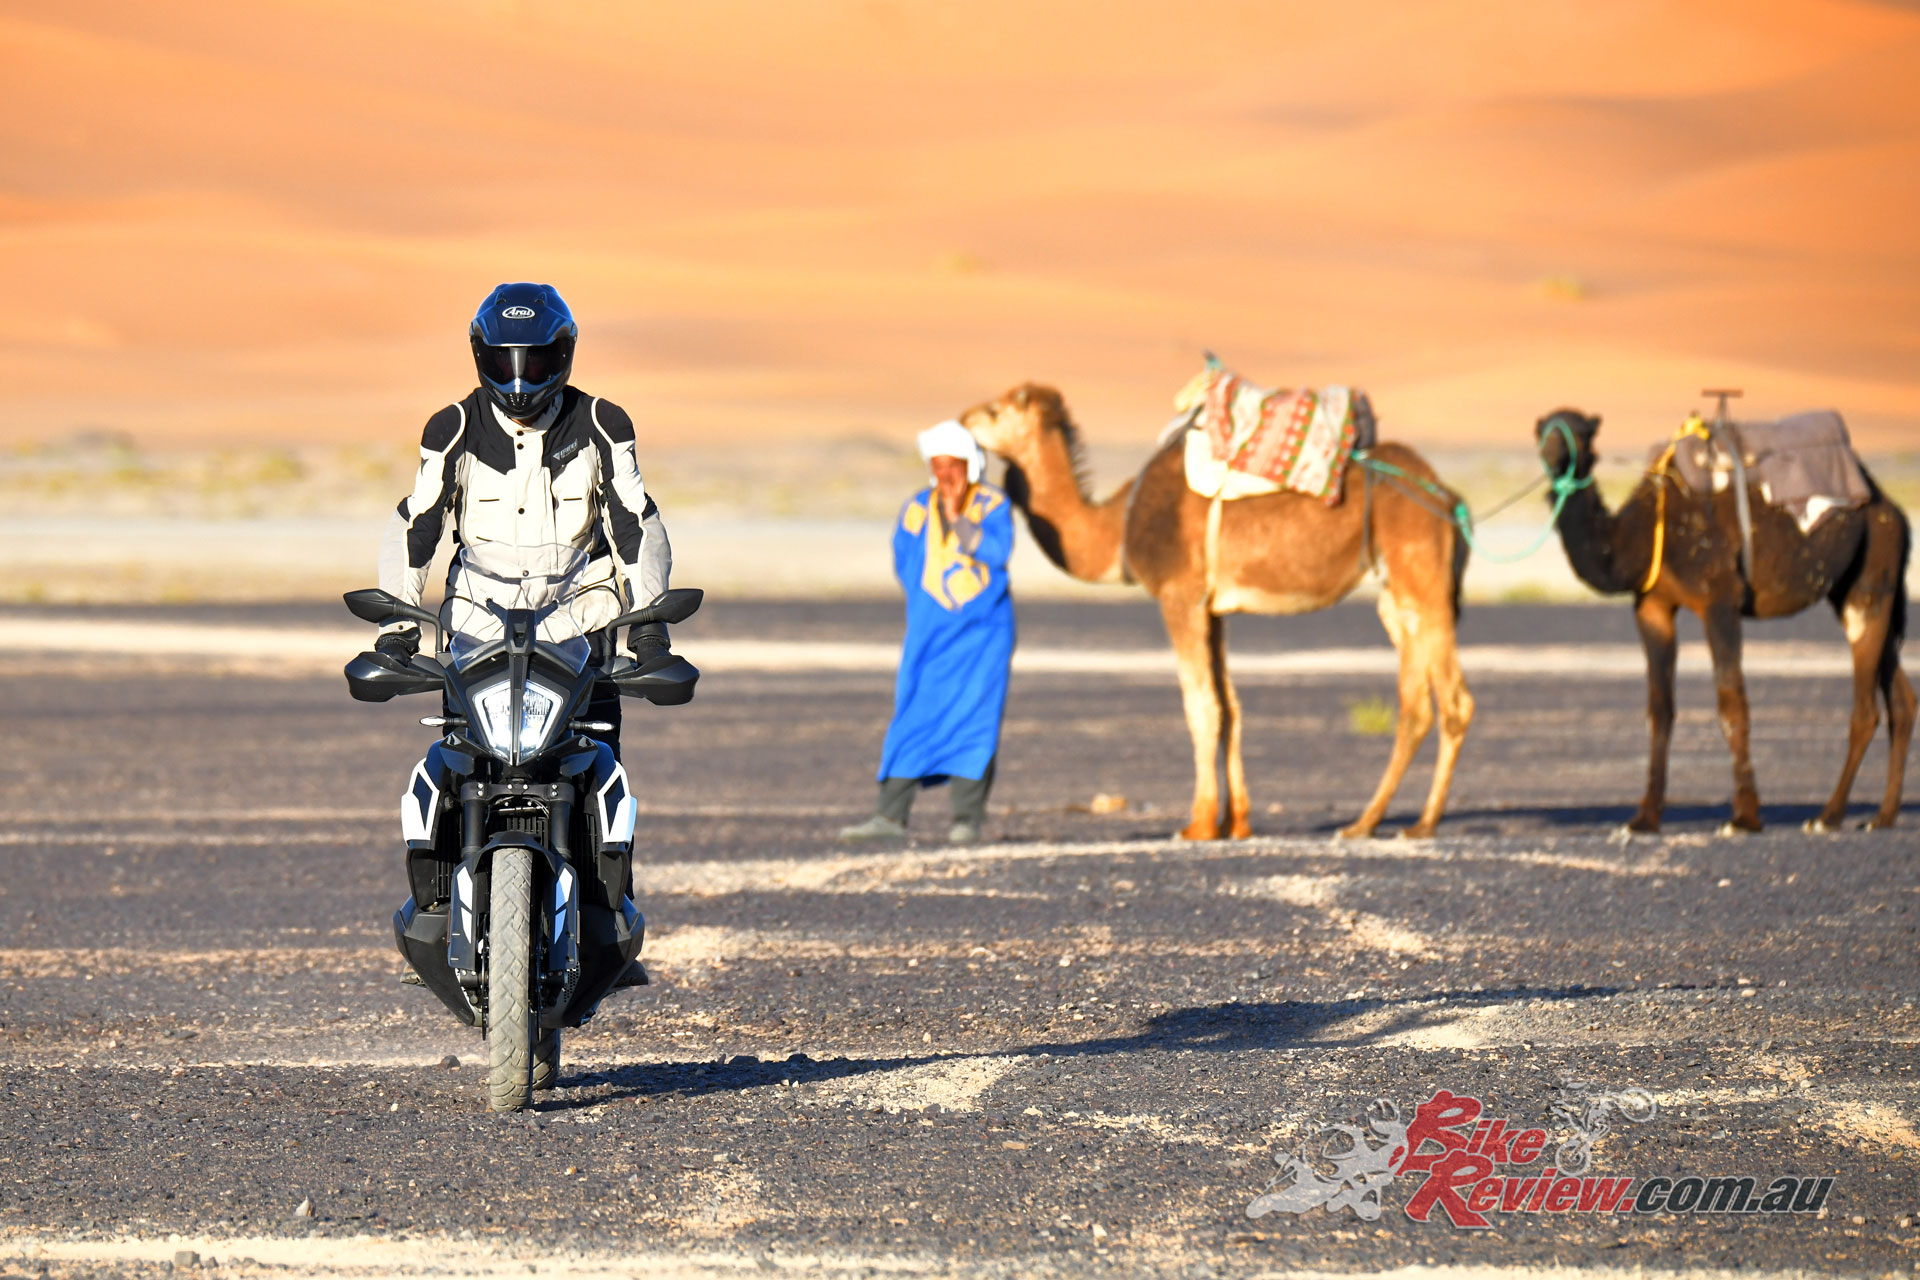 The sights and sounds of Morocco on the new KTM 790 Adventure